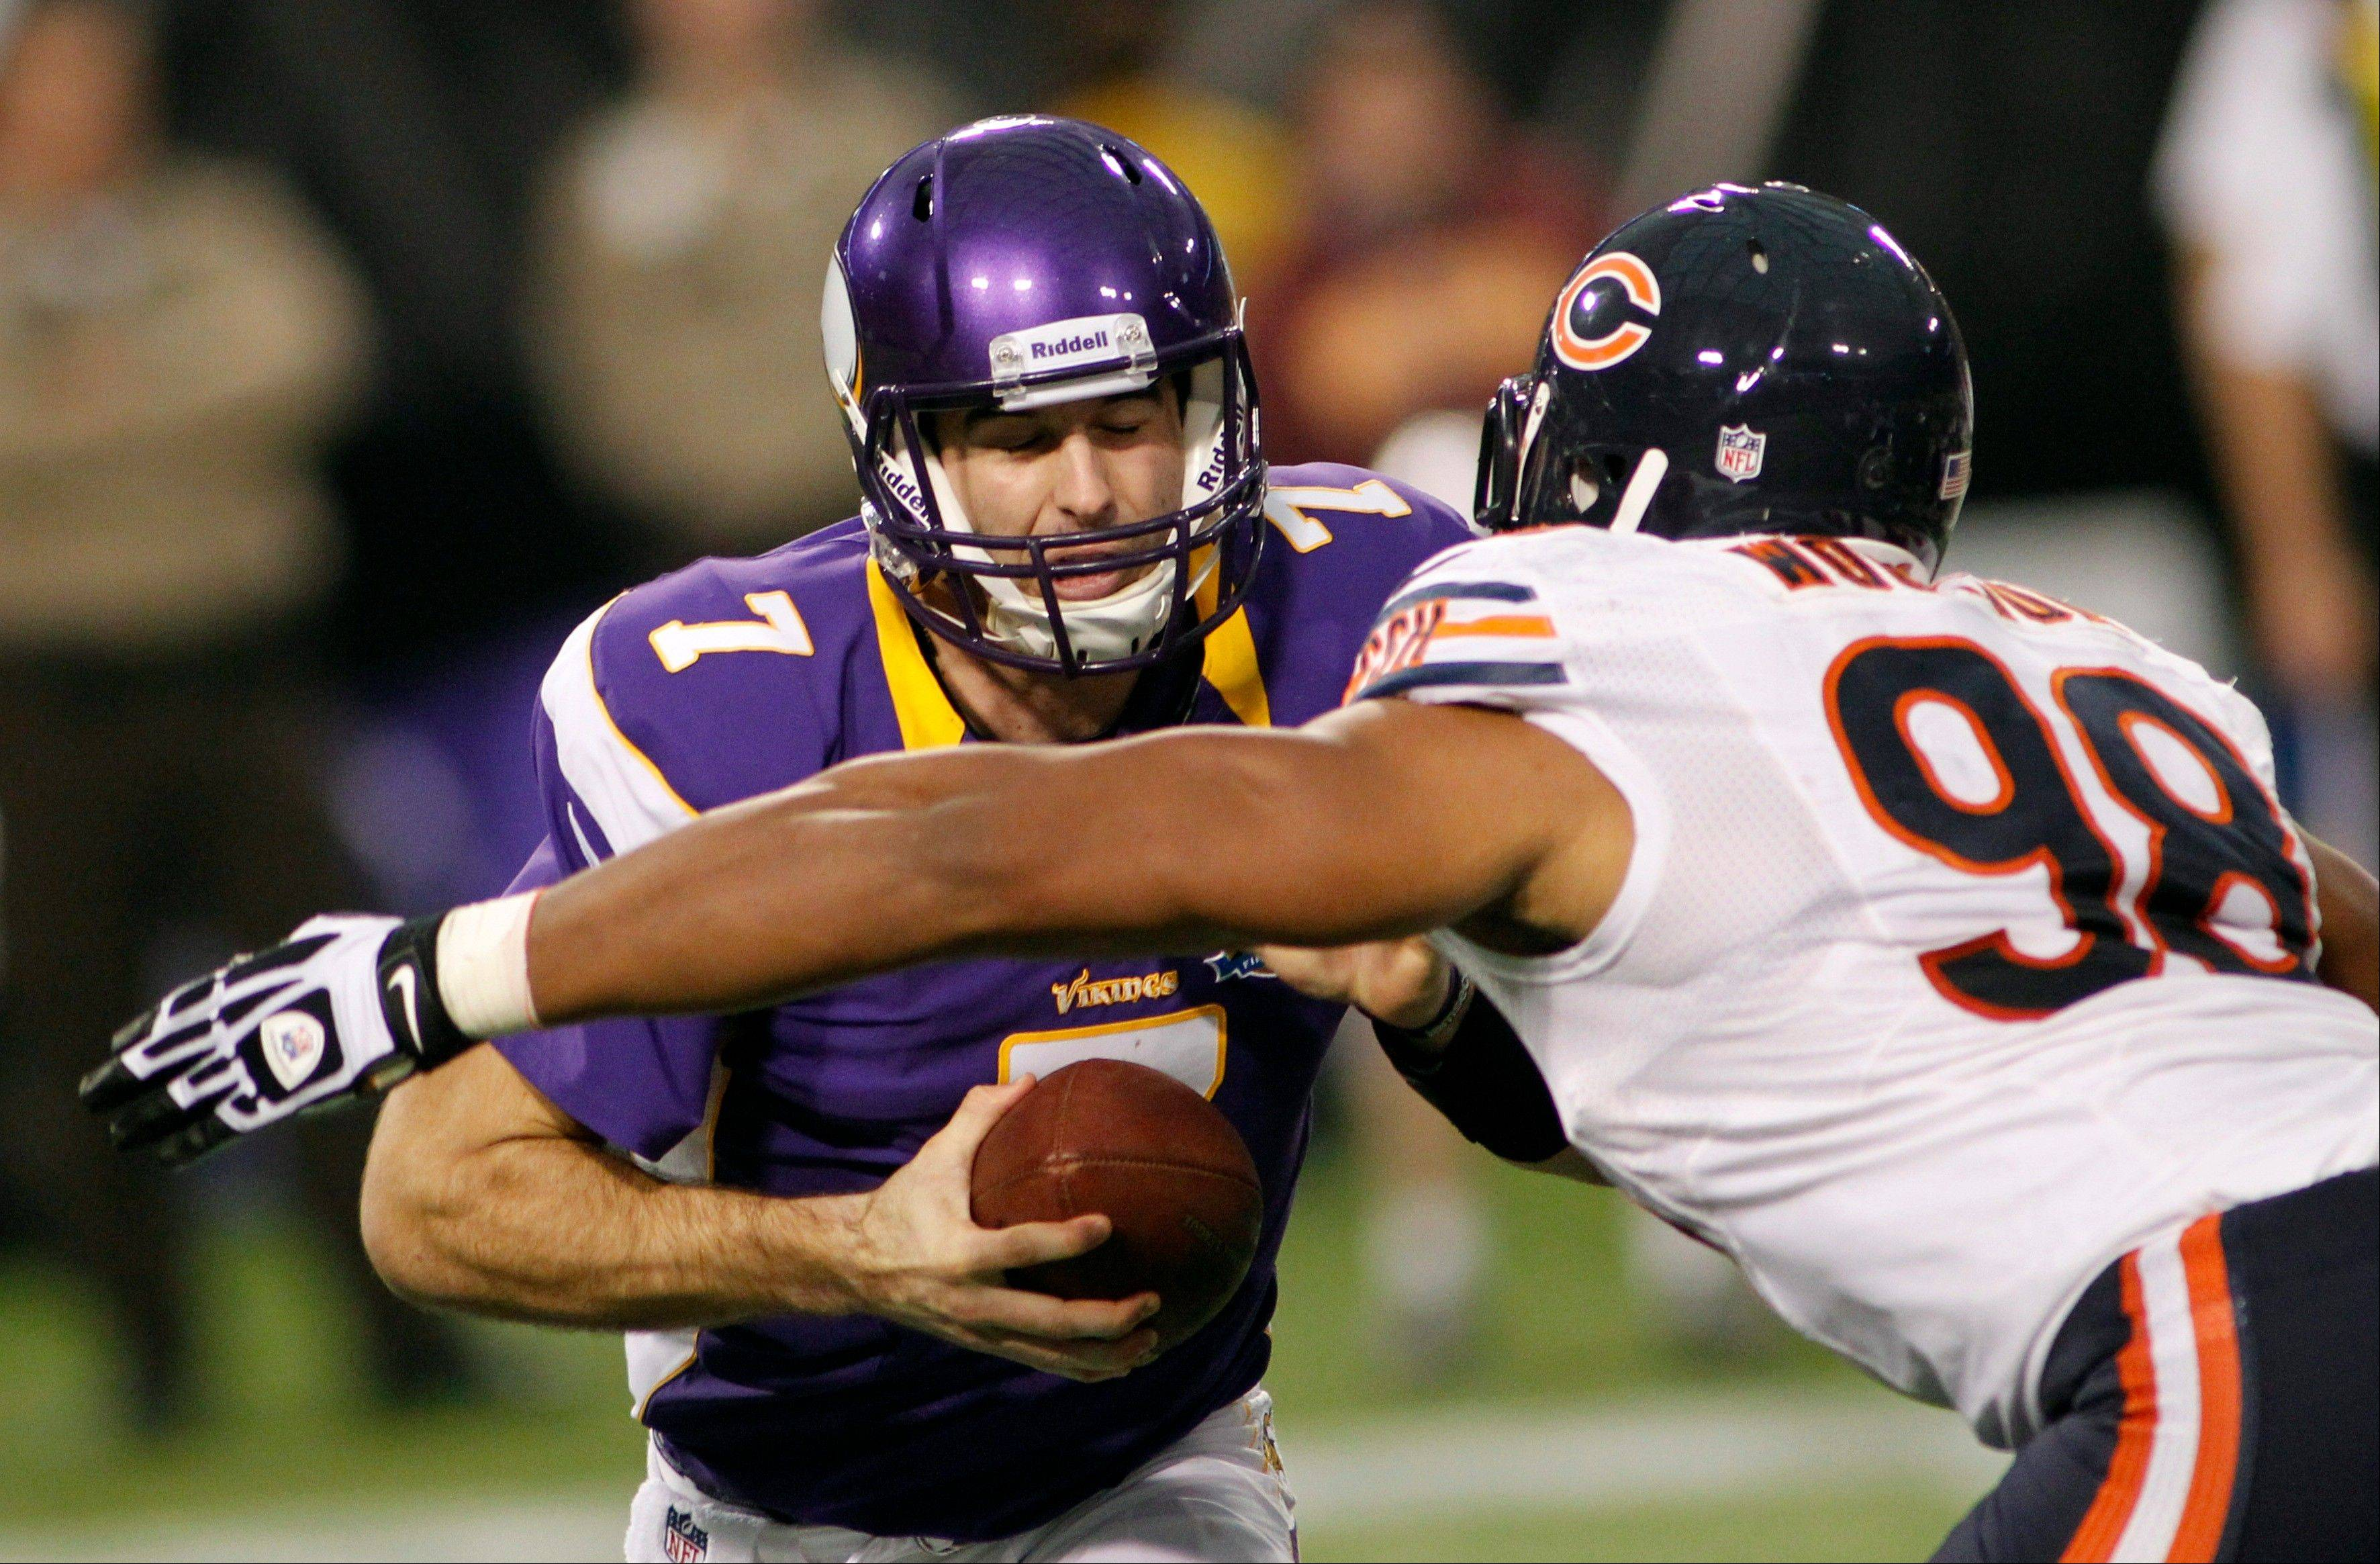 Minnesota Vikings quarterback Christian Ponder, left, is sacked by Chicago Bears defensive end Corey Wootton during the first half.